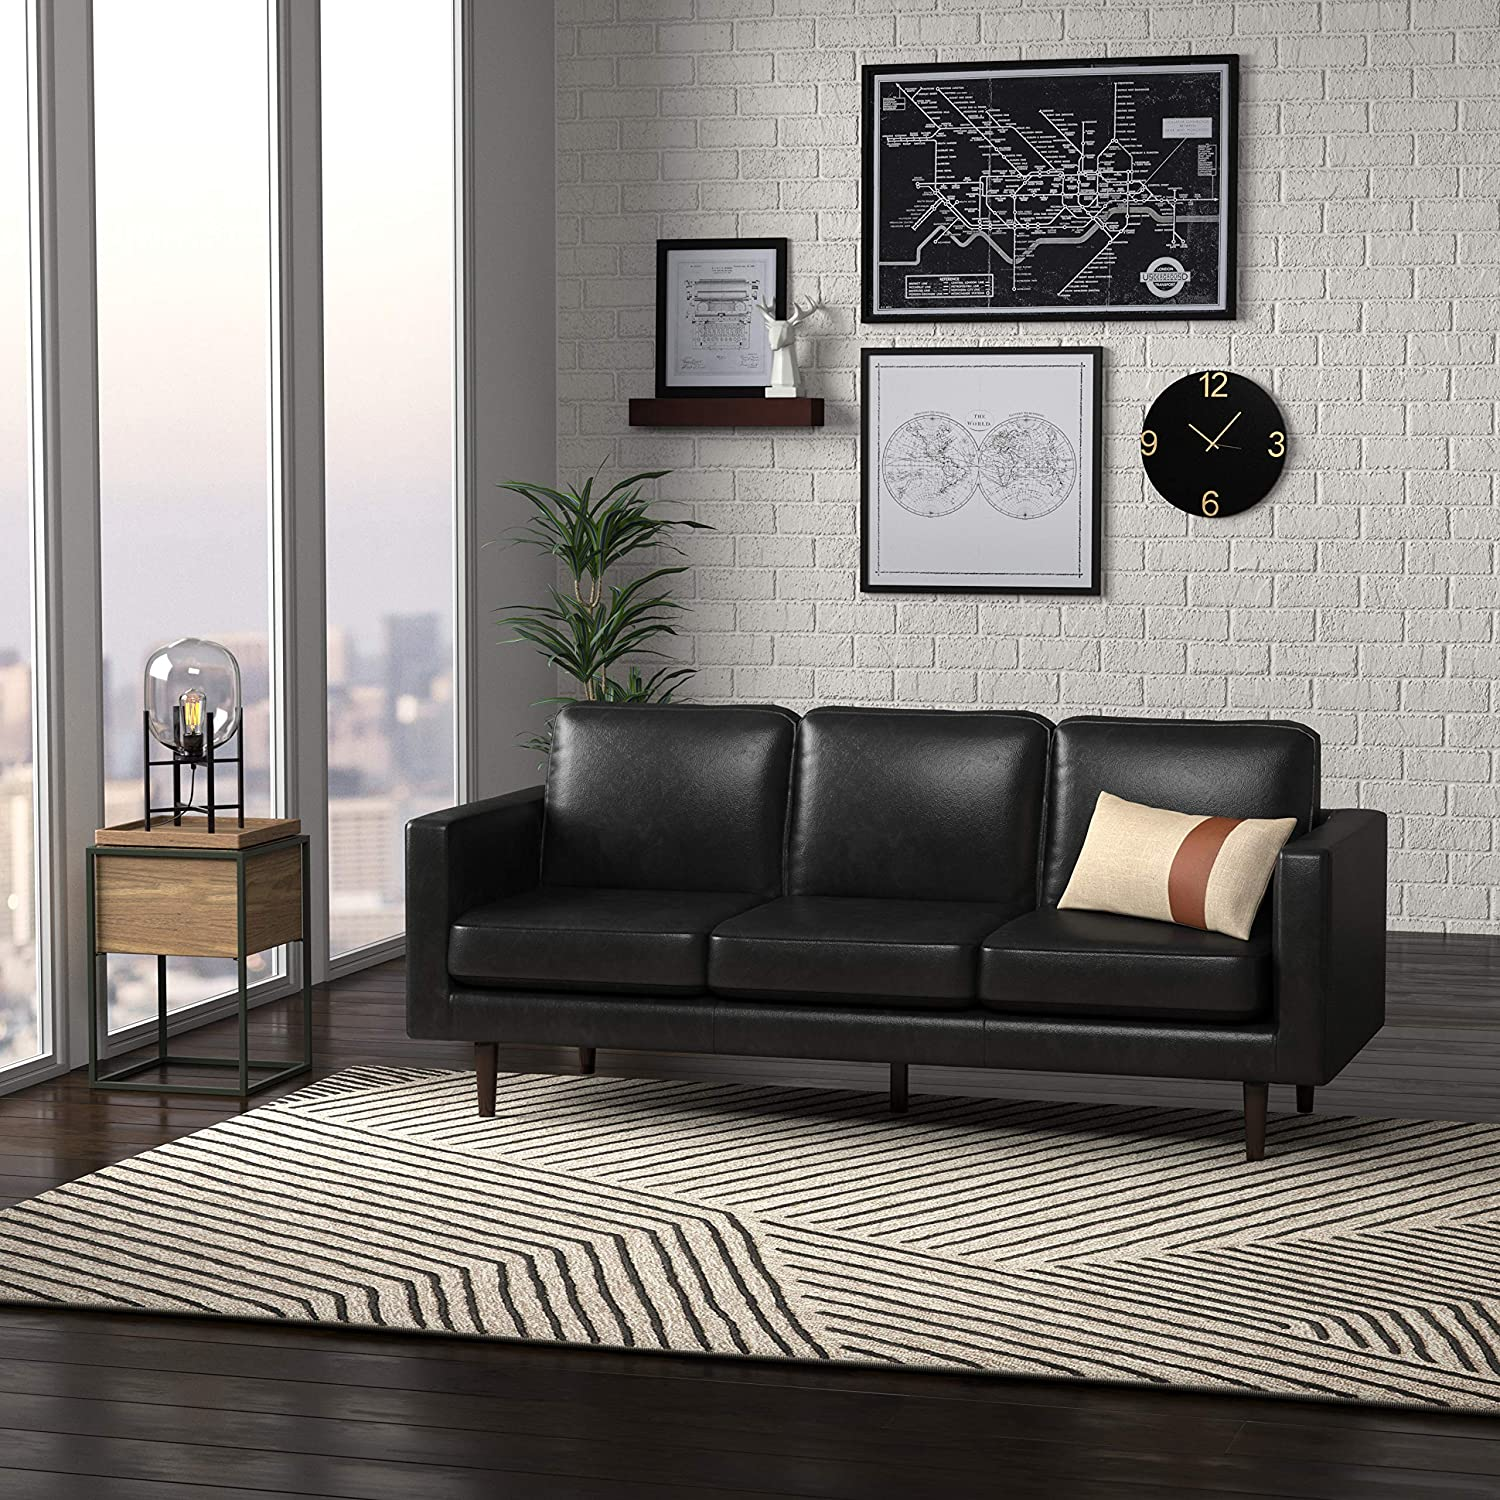 Rivet Revolve Modern Leather Sofa Couch